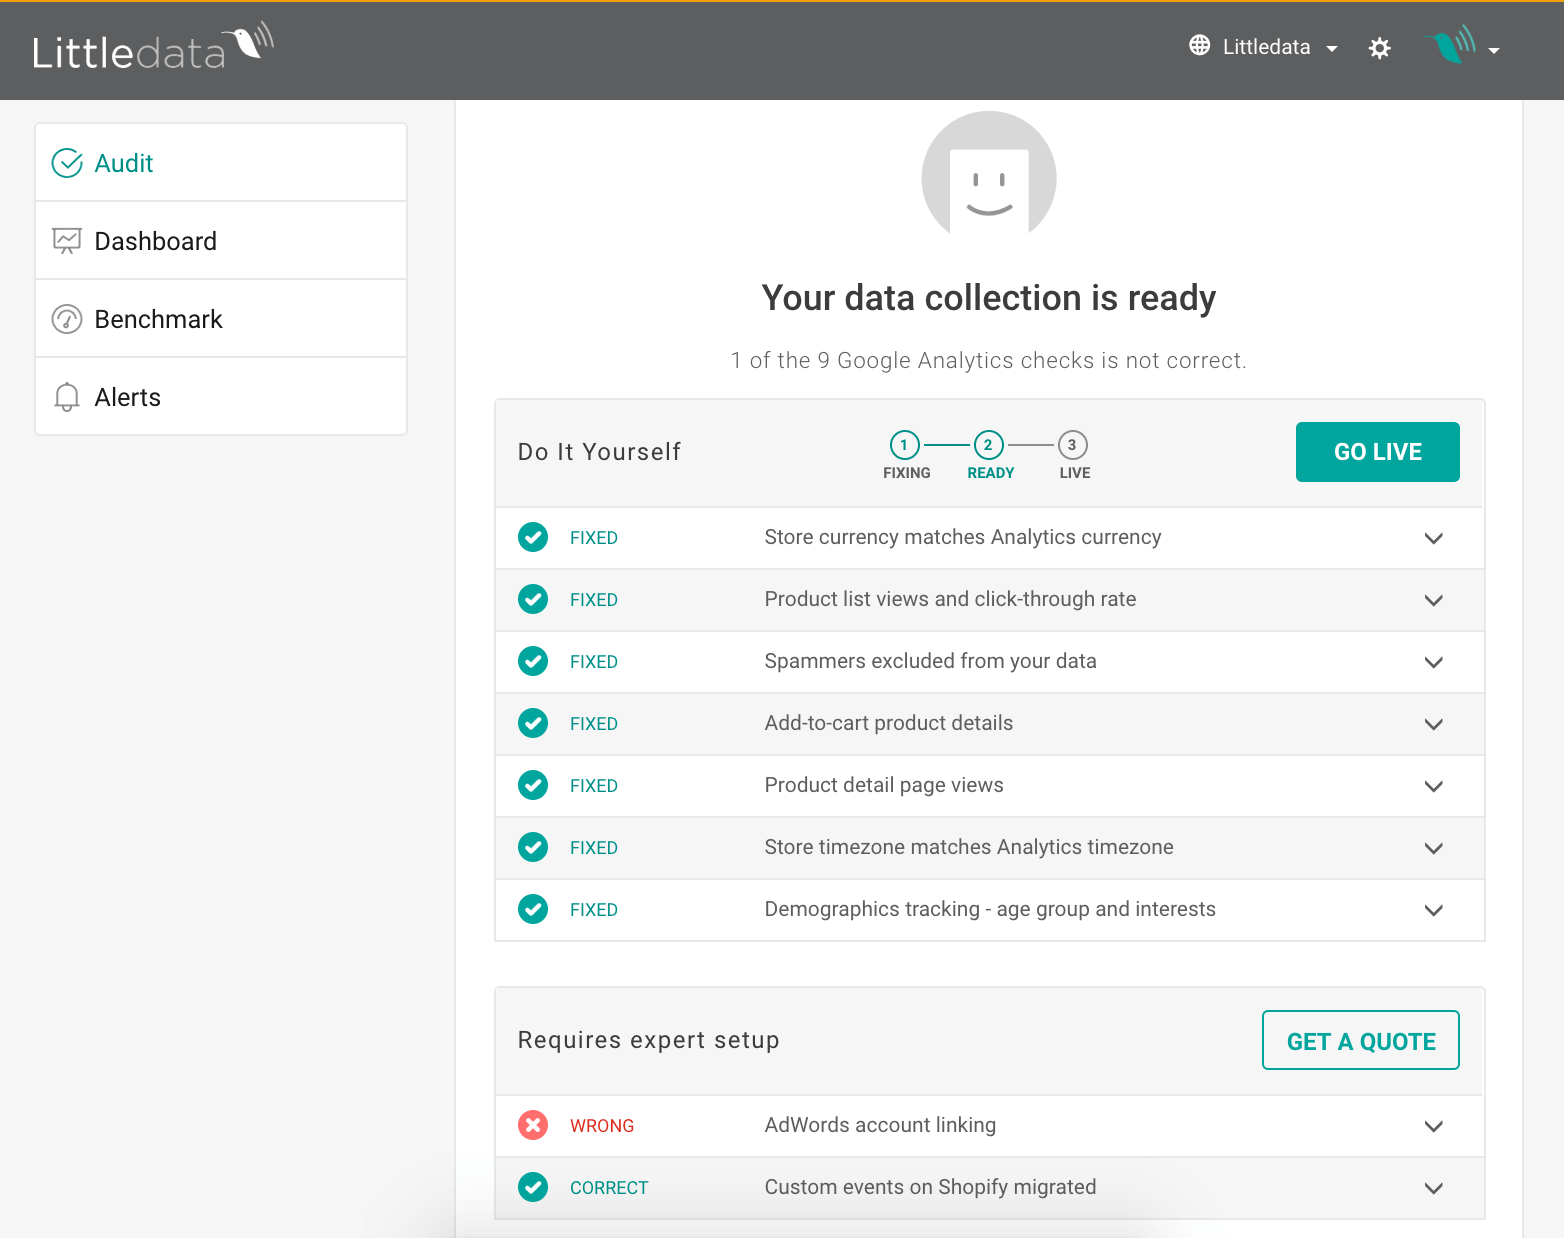 After you verify tha data you can go Live with the new tracking